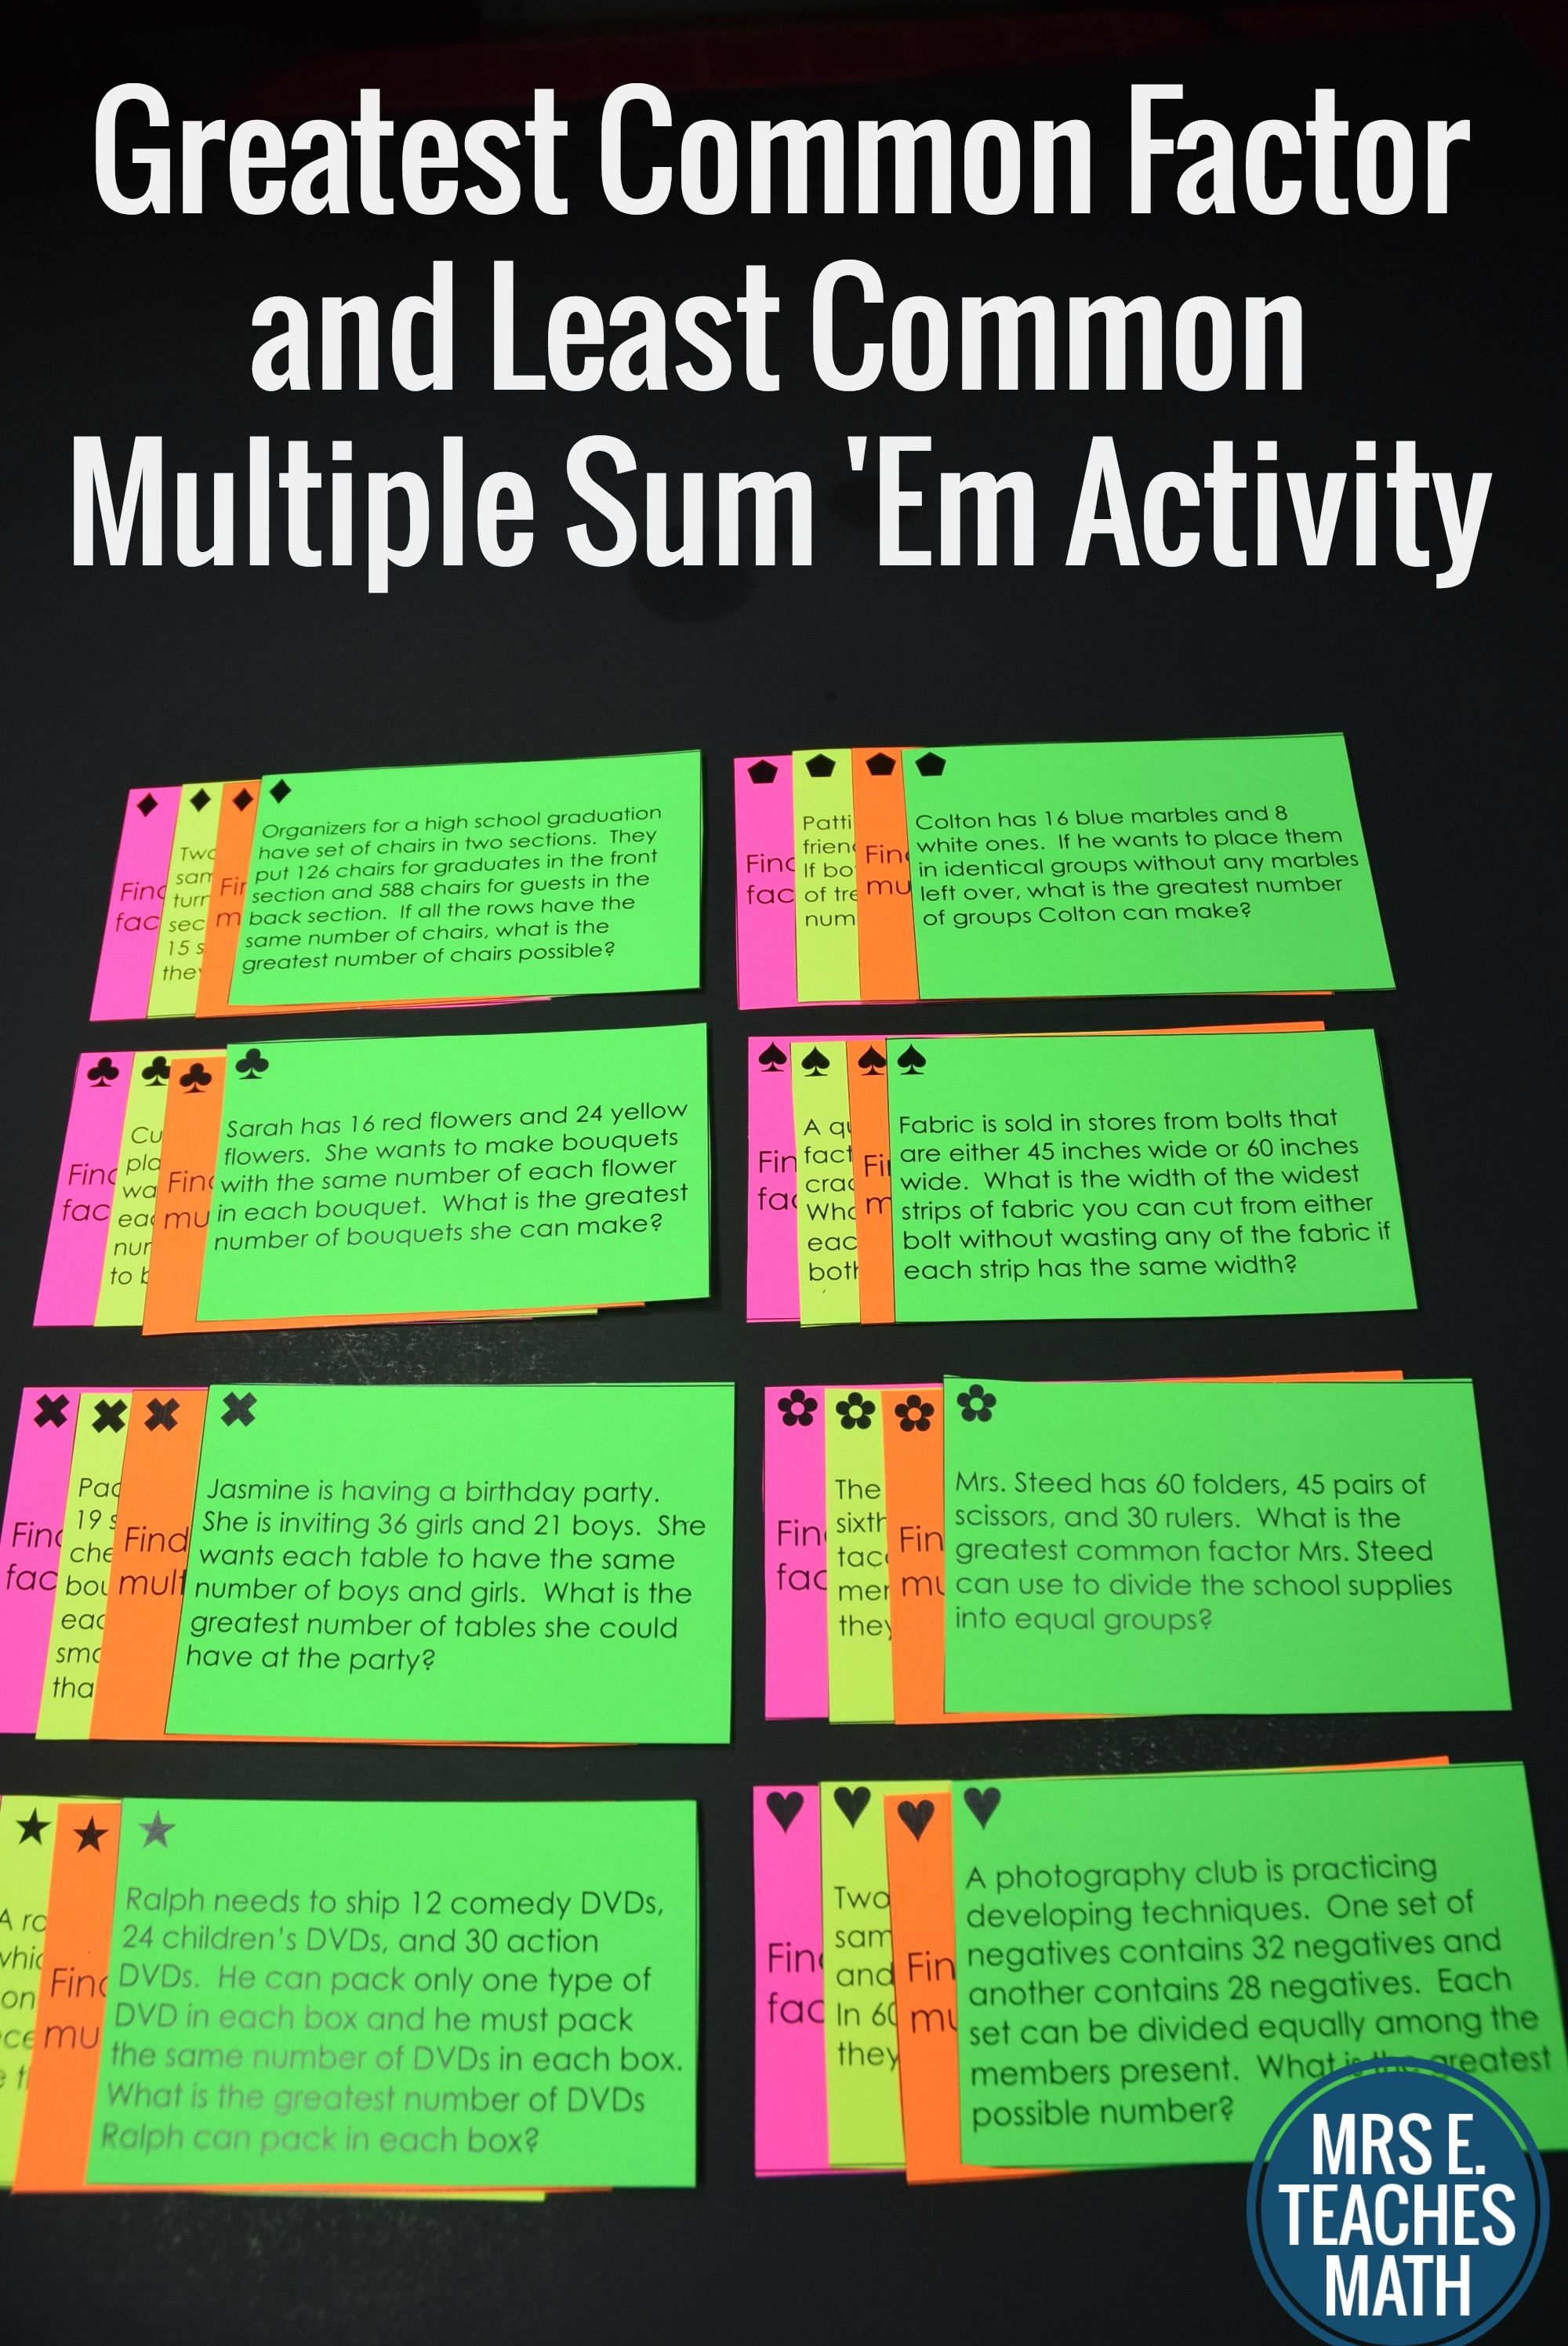 Gcf And Lcm Sum Em Activity Word Problems